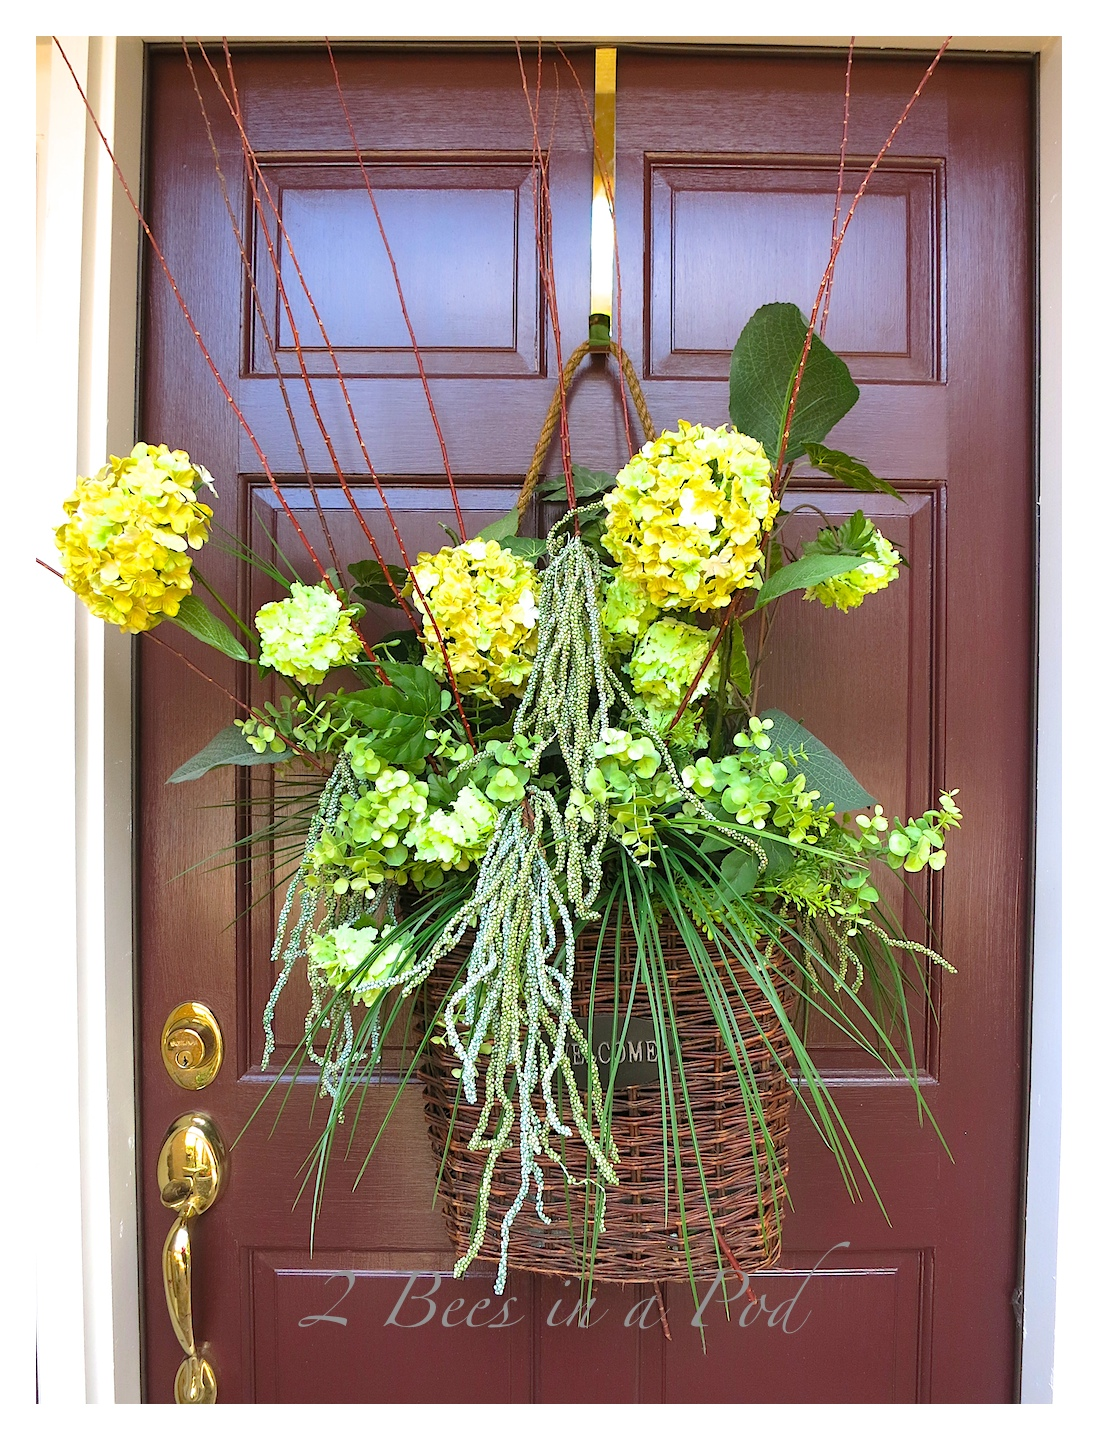 A welcome basket wreath for the front door to mark the beginning of Spring! Florals mixed with natural elements makes for a beautiful display on the front door.